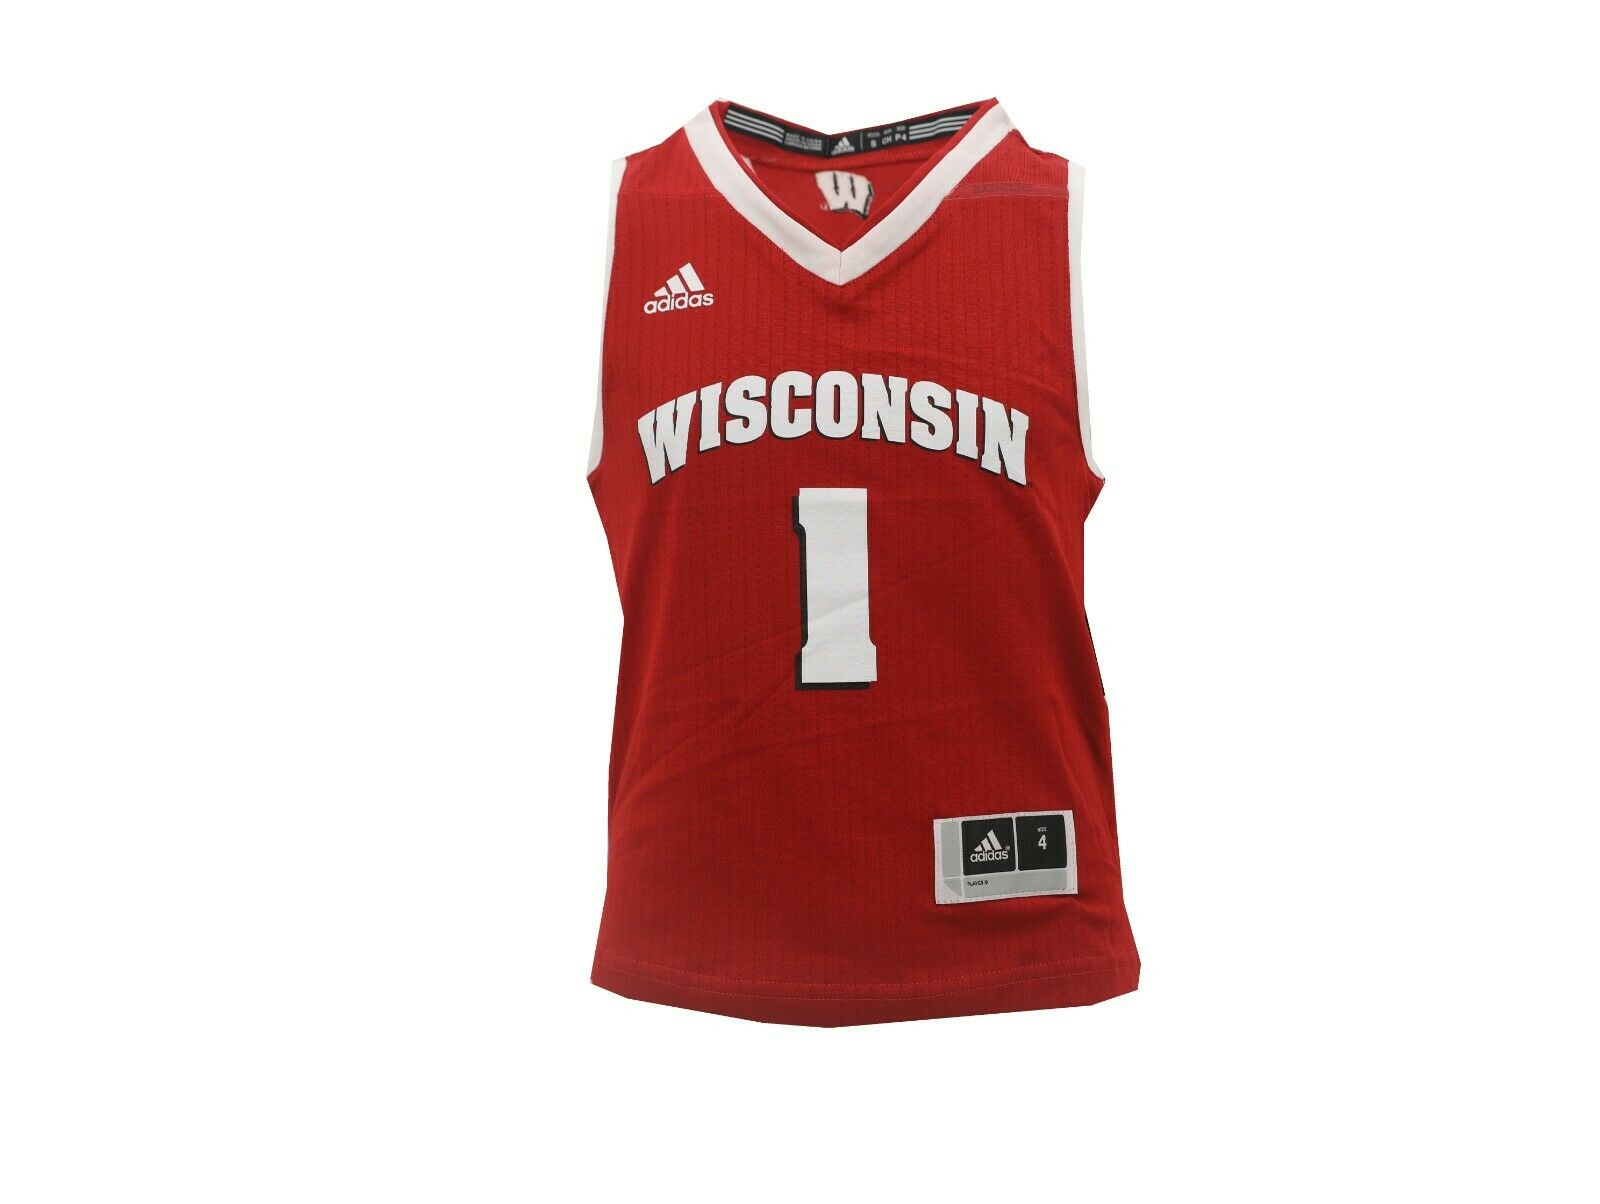 0dd73348bd2 Wisconsin Badgers Official NCAA Adidas Youth Kids Size Basketball Jersey New